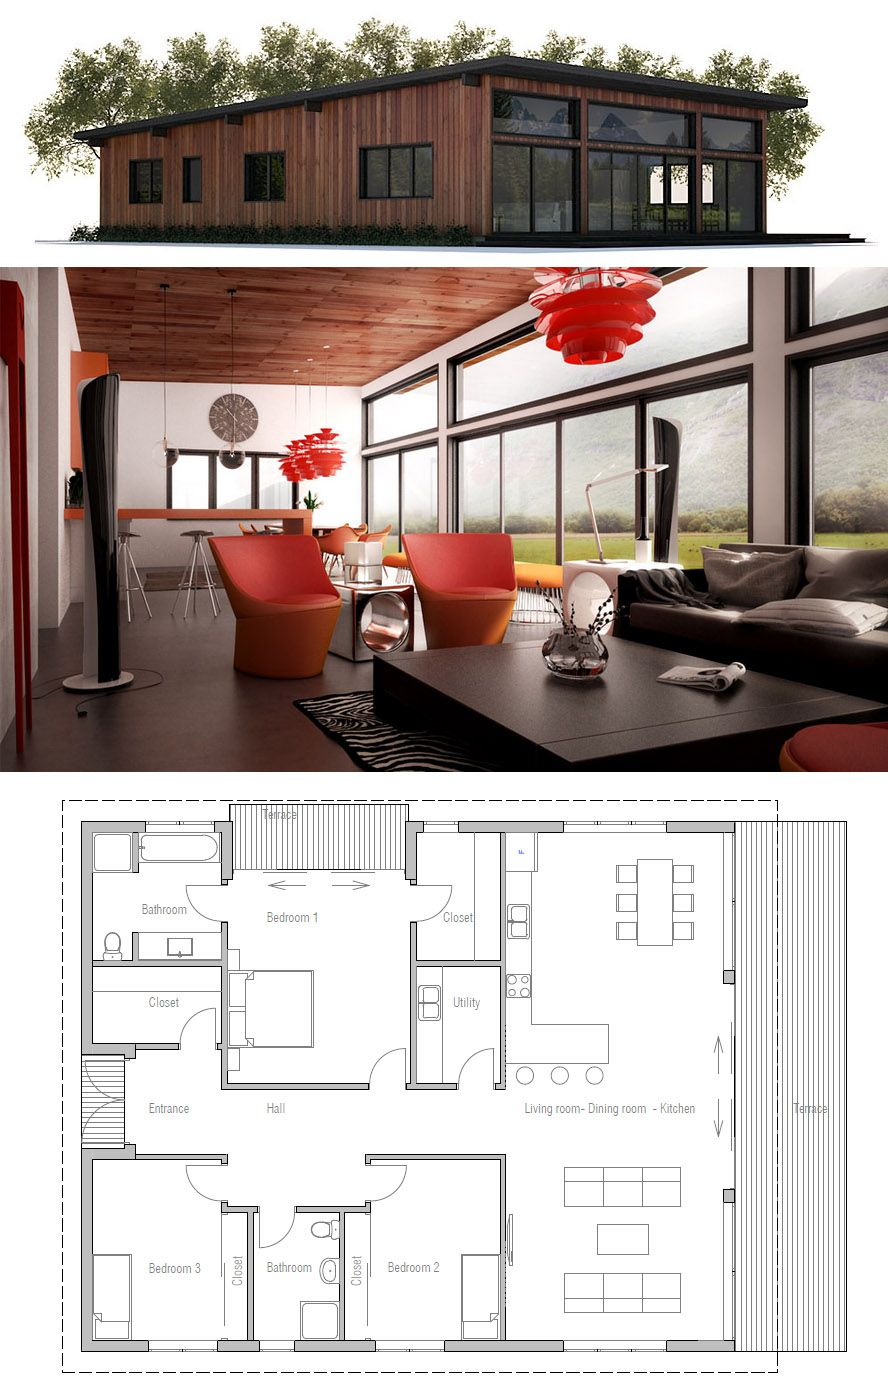 Small House Plan Small Home Plan Architecture Homeplan Houseplans Architecture Newhomeplan Adhouseplans Small House Plan Small House Plans House Plans